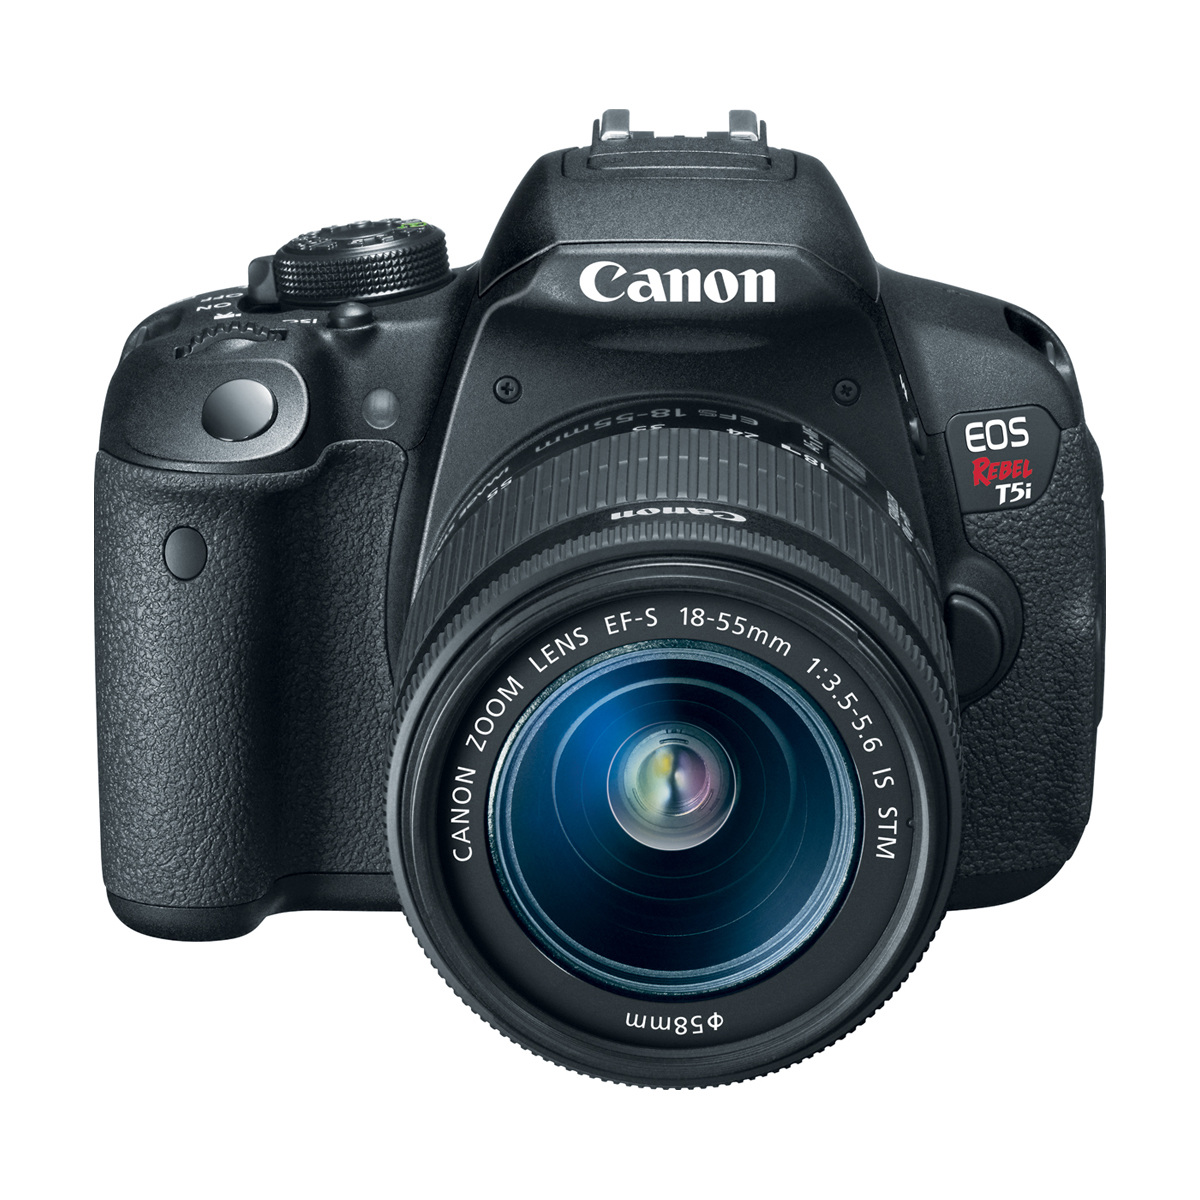 Canon EOS Rebel T5i 18-Megapixel Digial Camera 18-55mm IS STM Kit Black 14.9 x 22.3mm